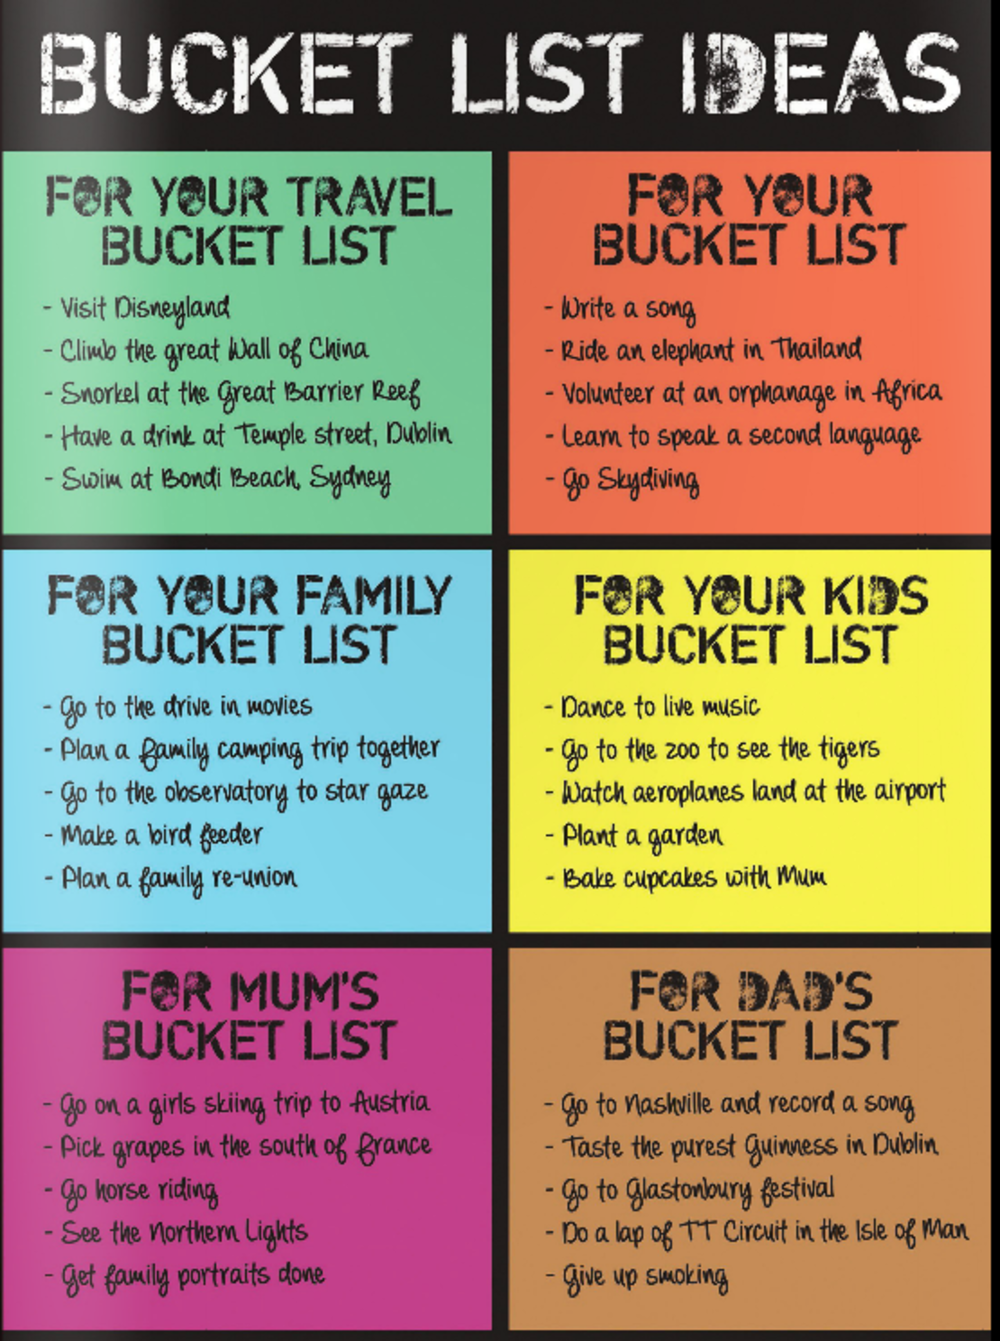 List Of Wedding Gift Ideas Suggestions : Splosh Travel Bucket List Gift Idea Anniversary Gifts Love Kates